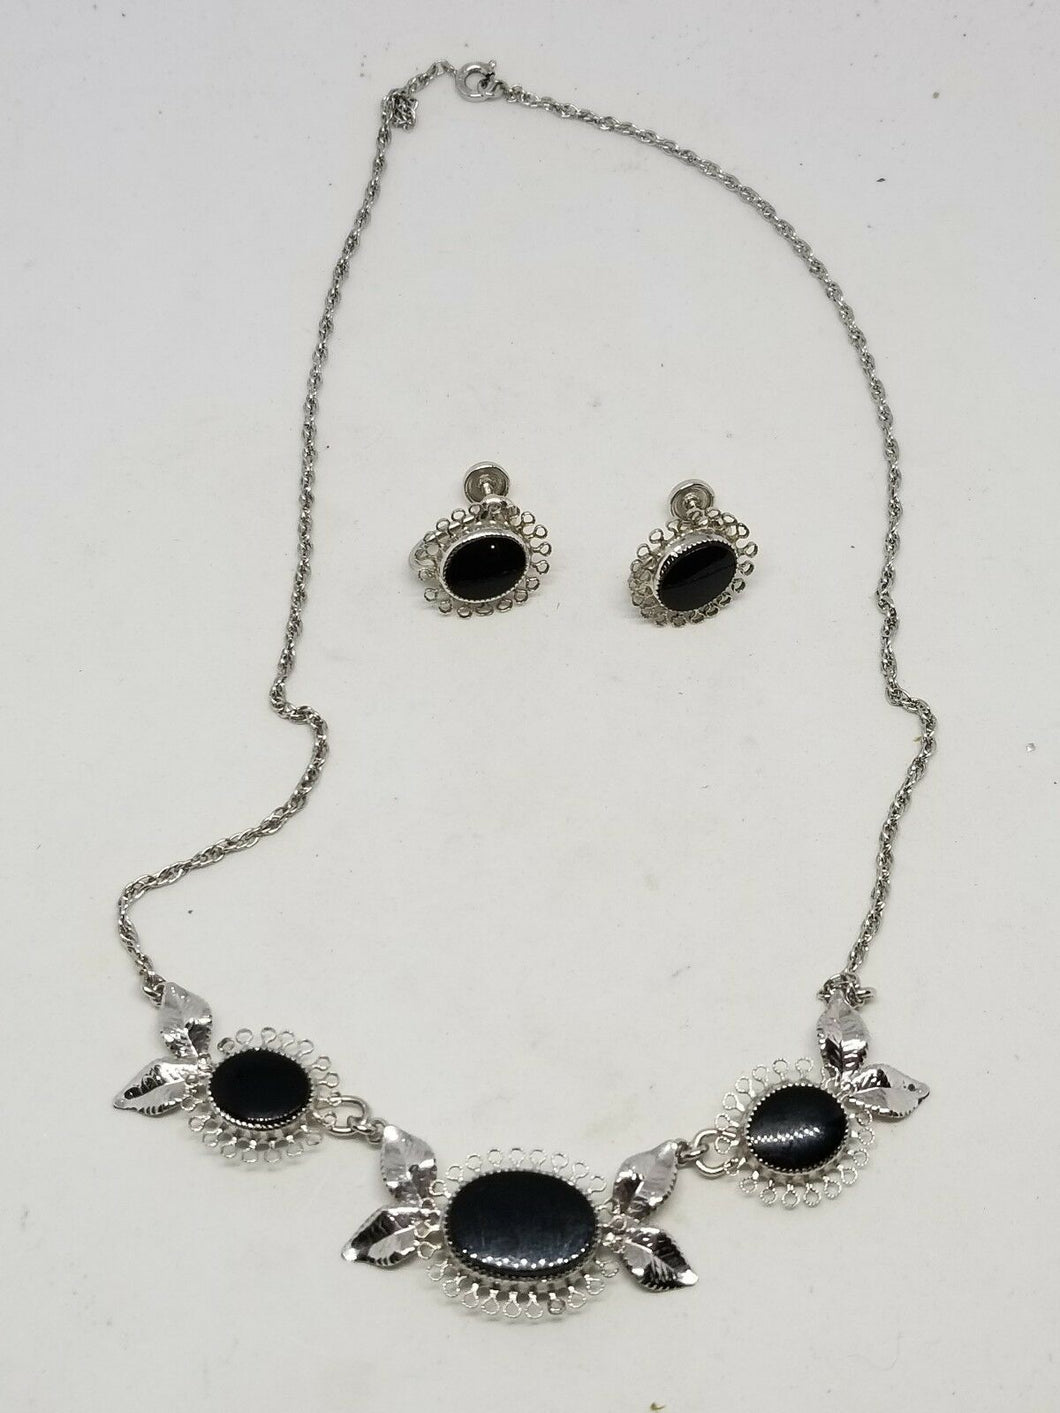 Vintage Star Art Sterling Silver Black Onyx Necklace and Earrings Set